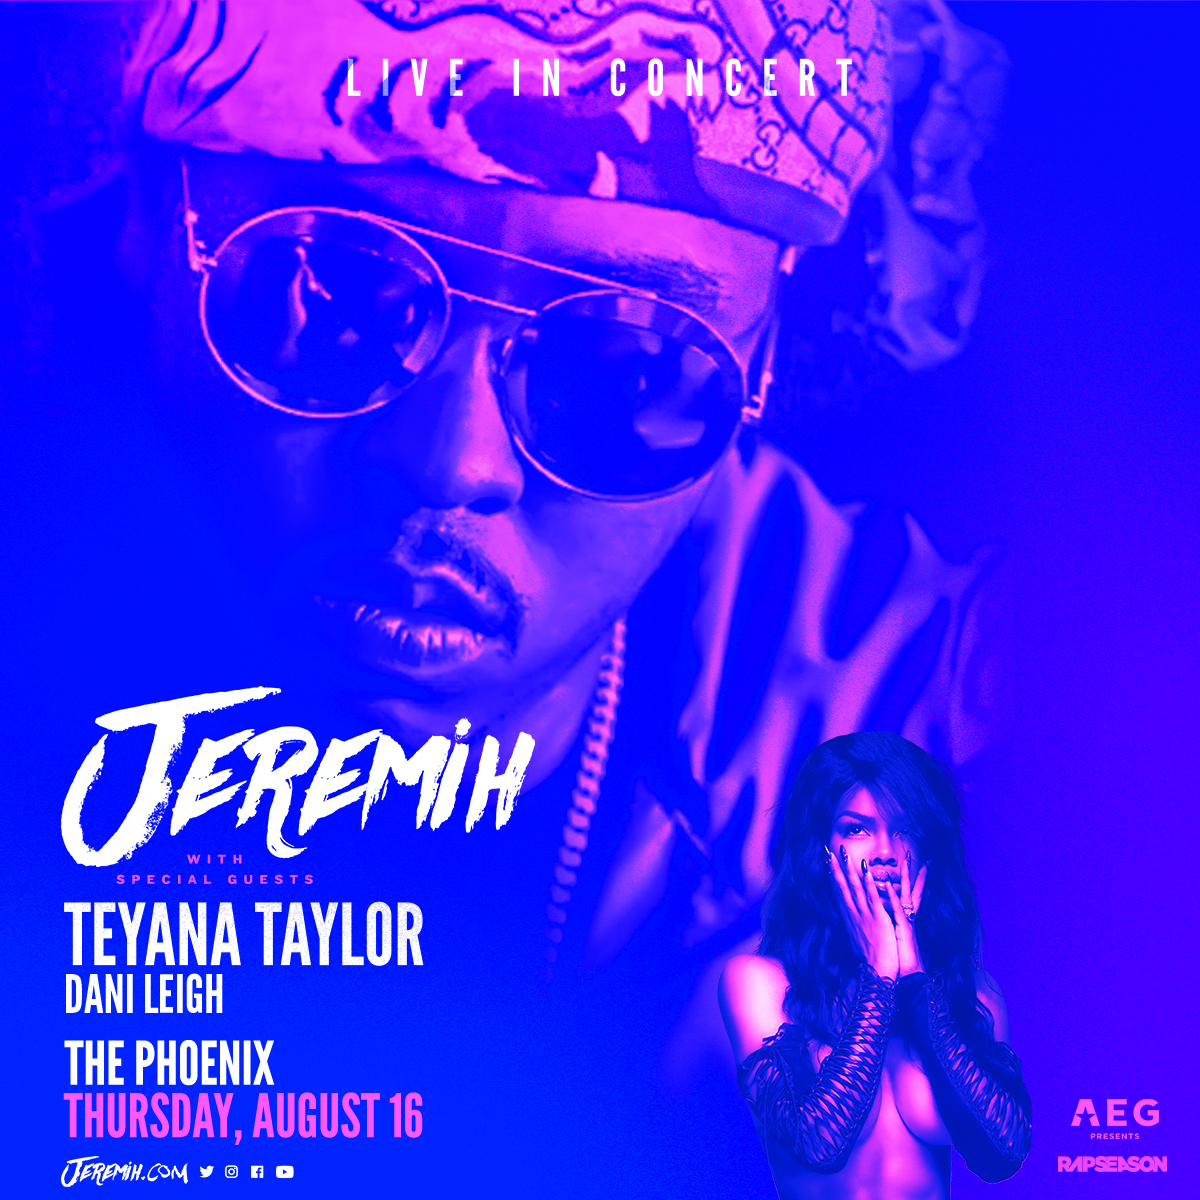 Listen to win 2 Tickets to Jeremih